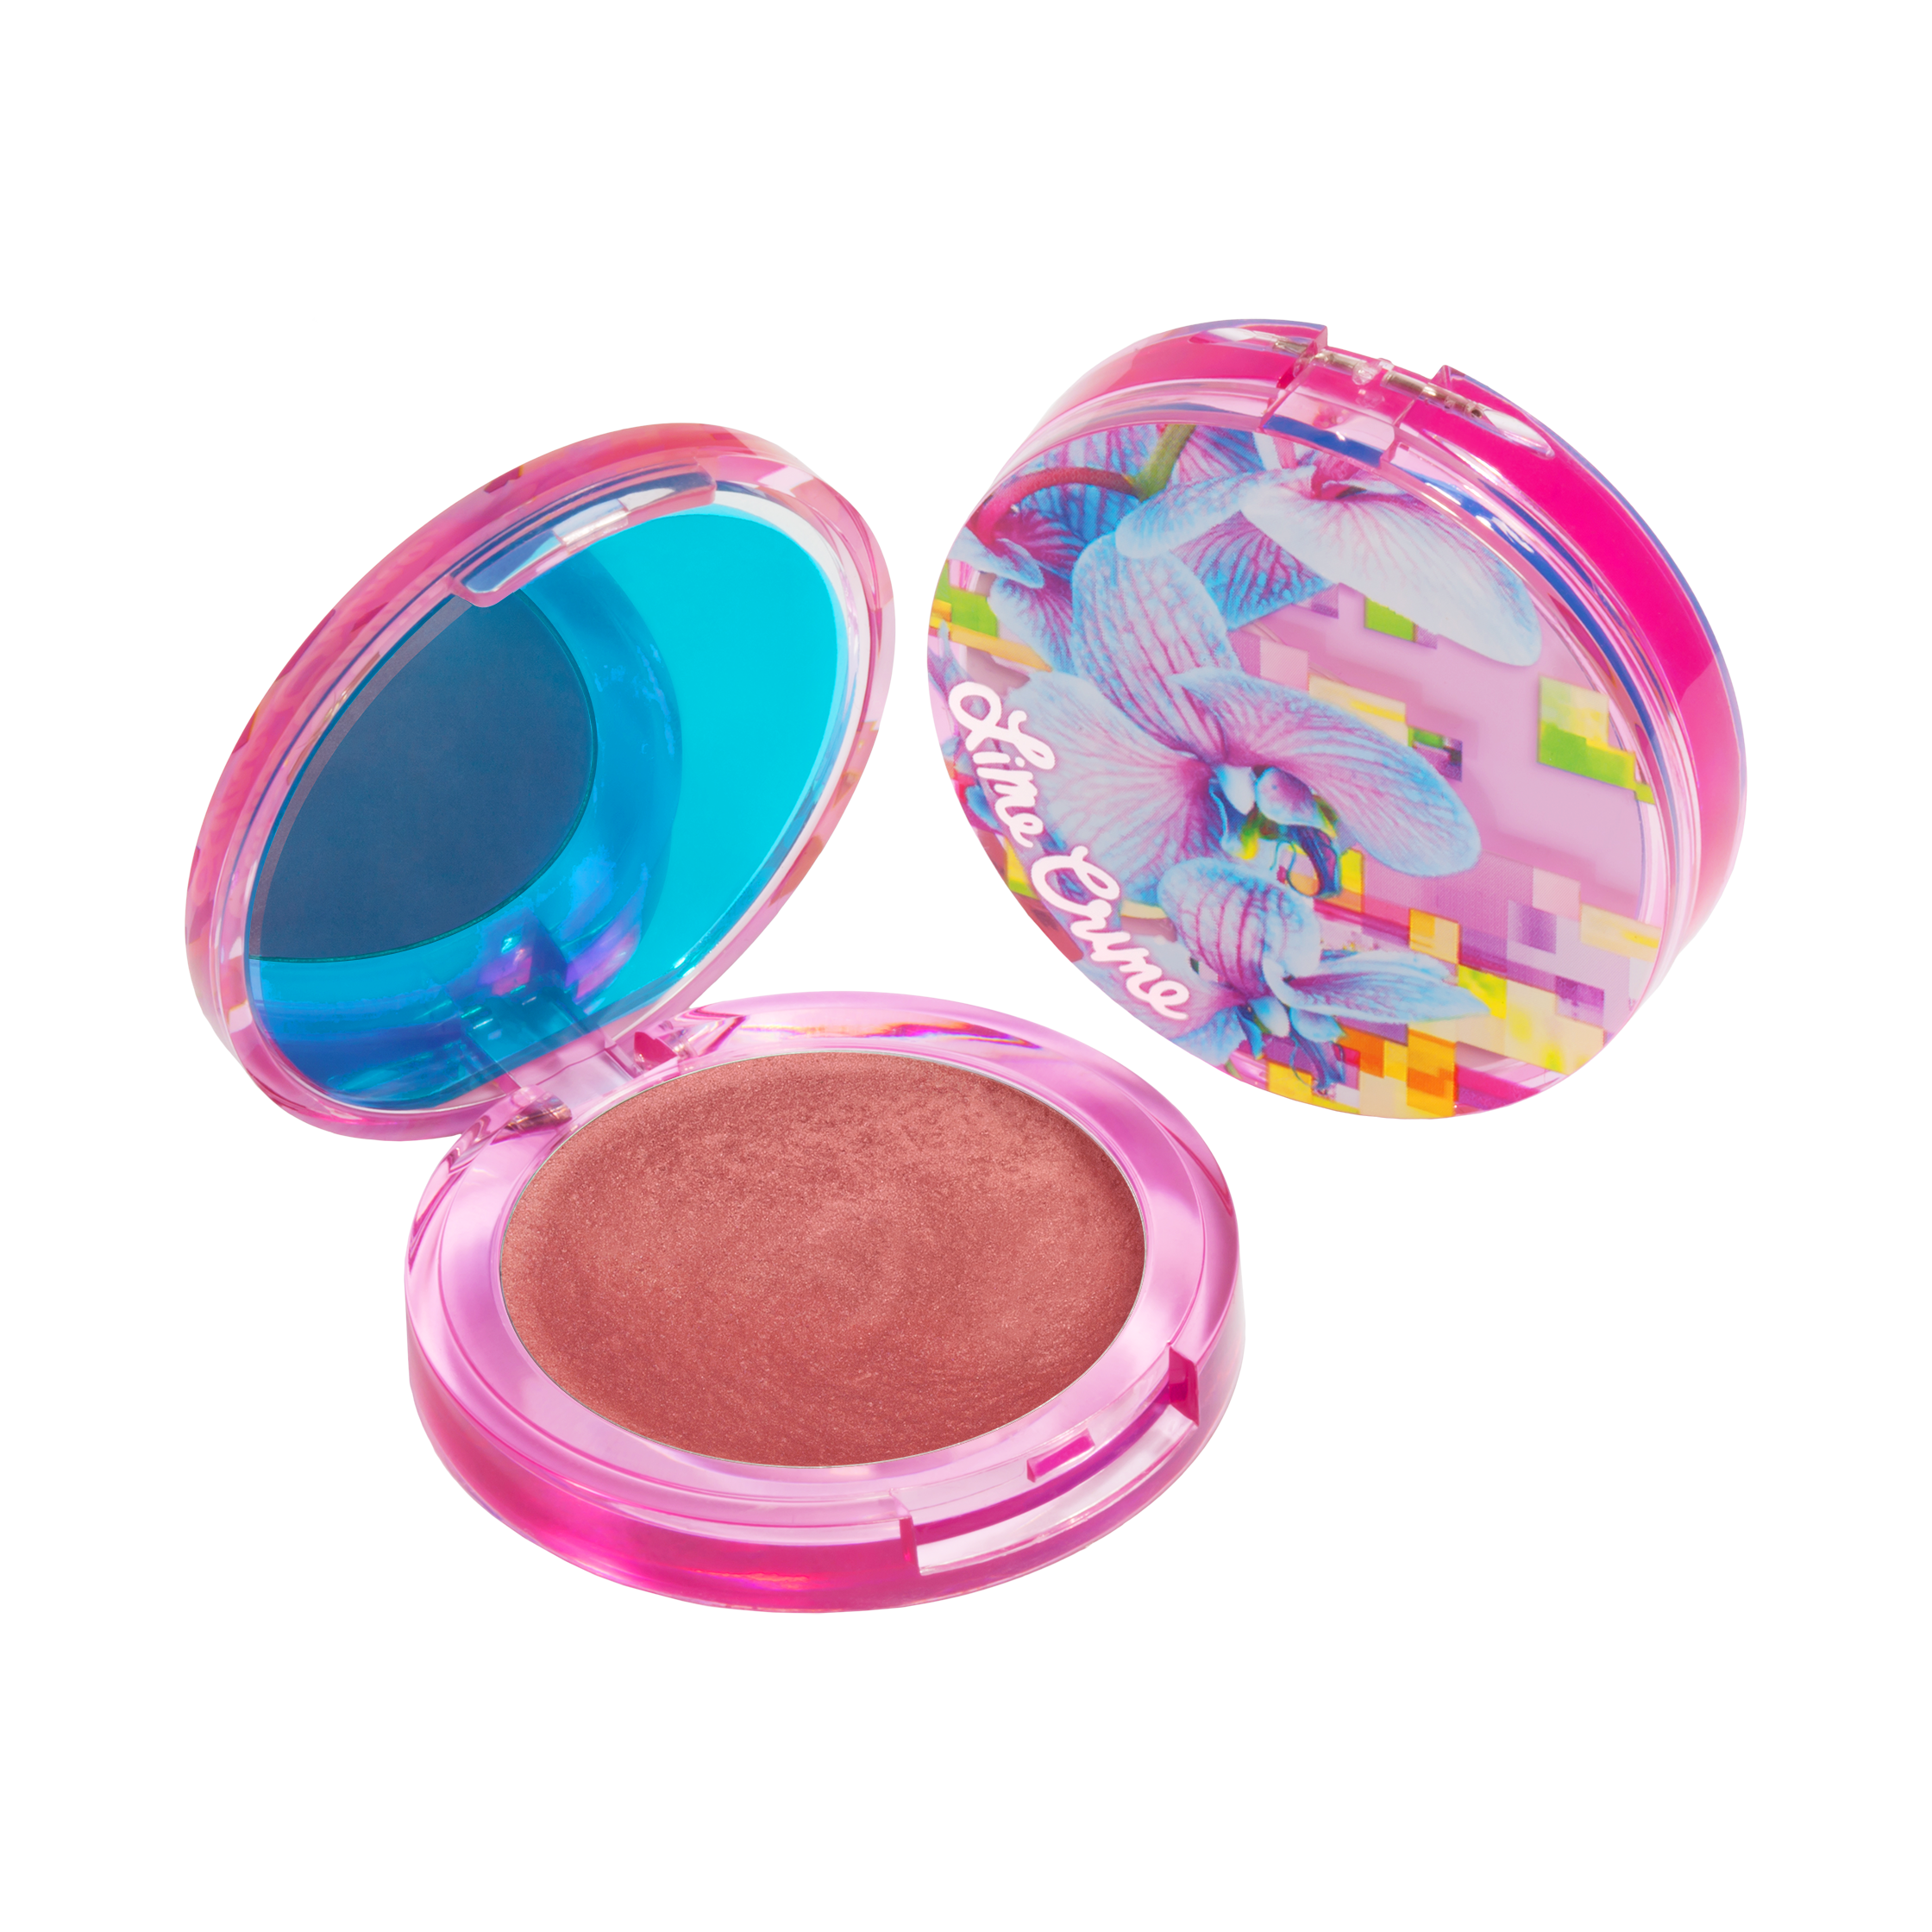 Lime Crime Glow Softwear Blush - Flash Drive - Open + Component.png